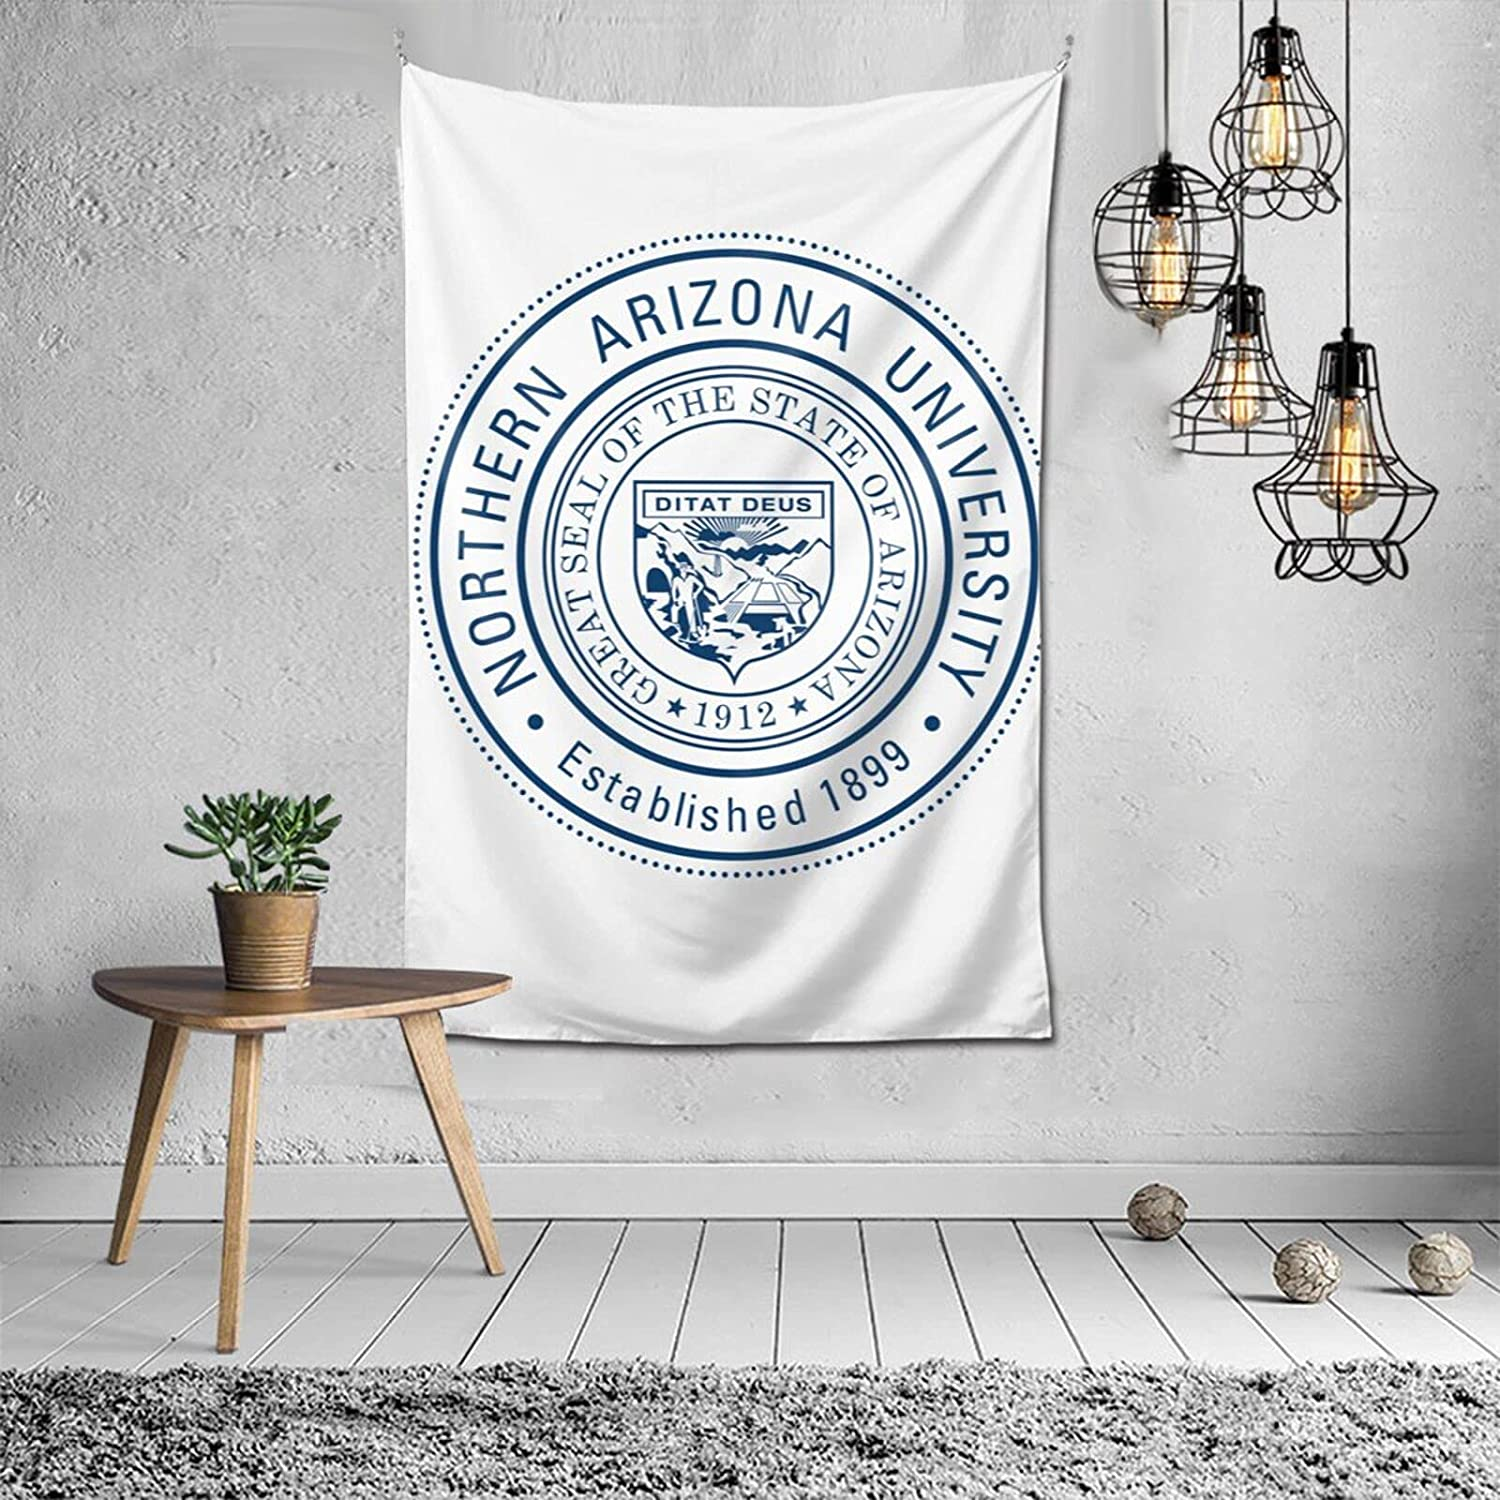 Wall Tapestry for Bedroom, Living Room, Dorm Home Northern Arizona University Wall Decor,6040inch